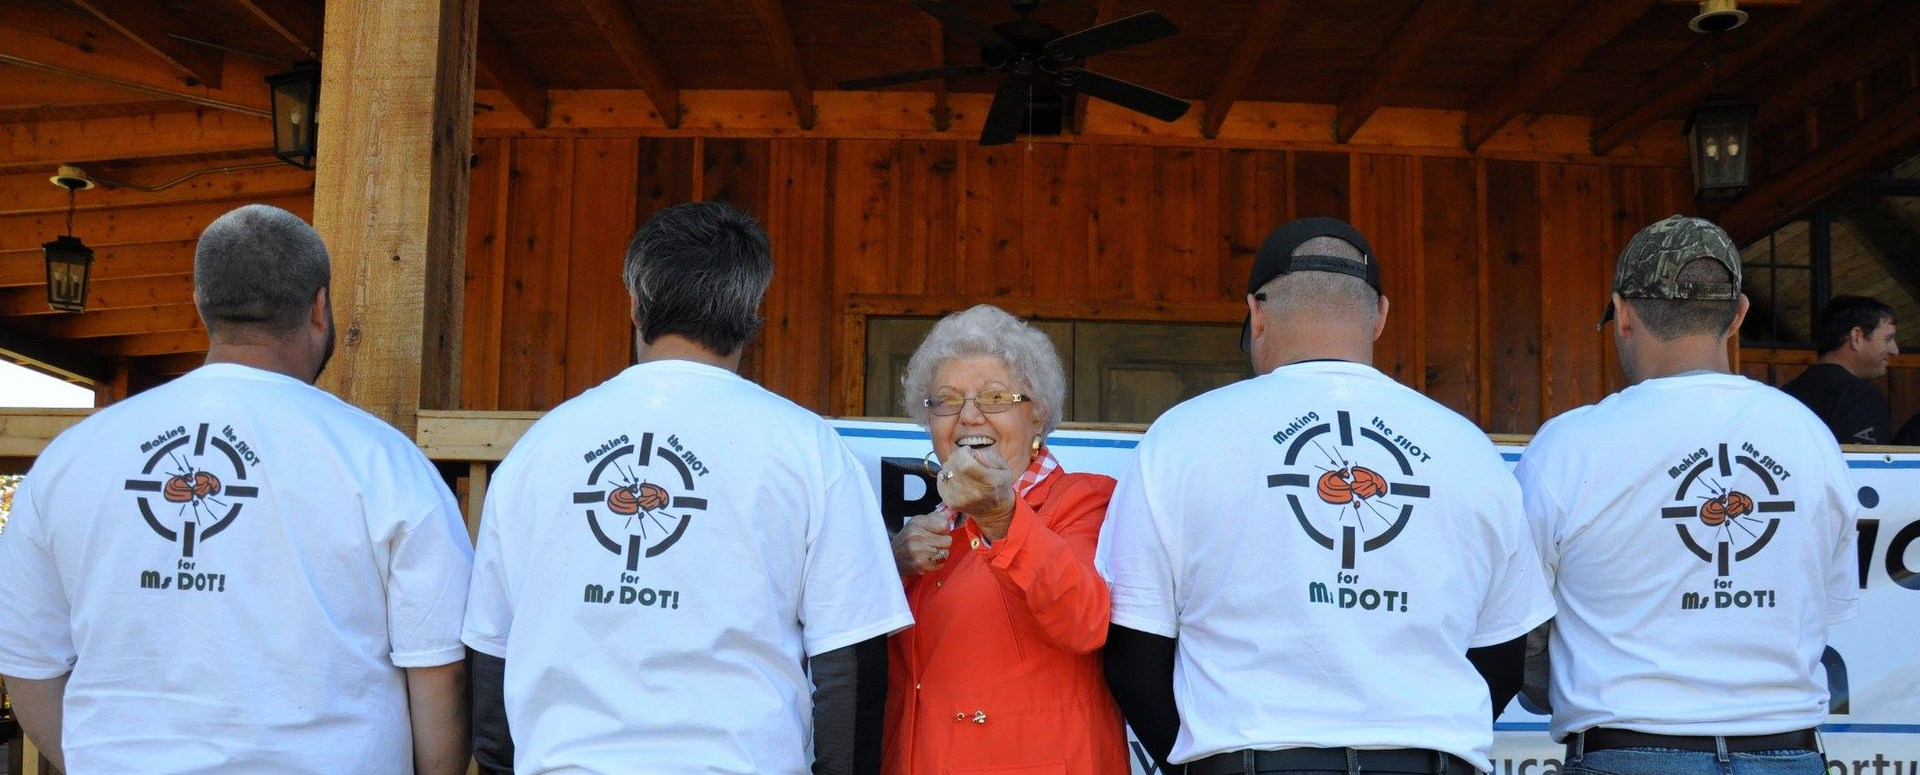 Ms. Dot pictured with Clay Shoot Participants